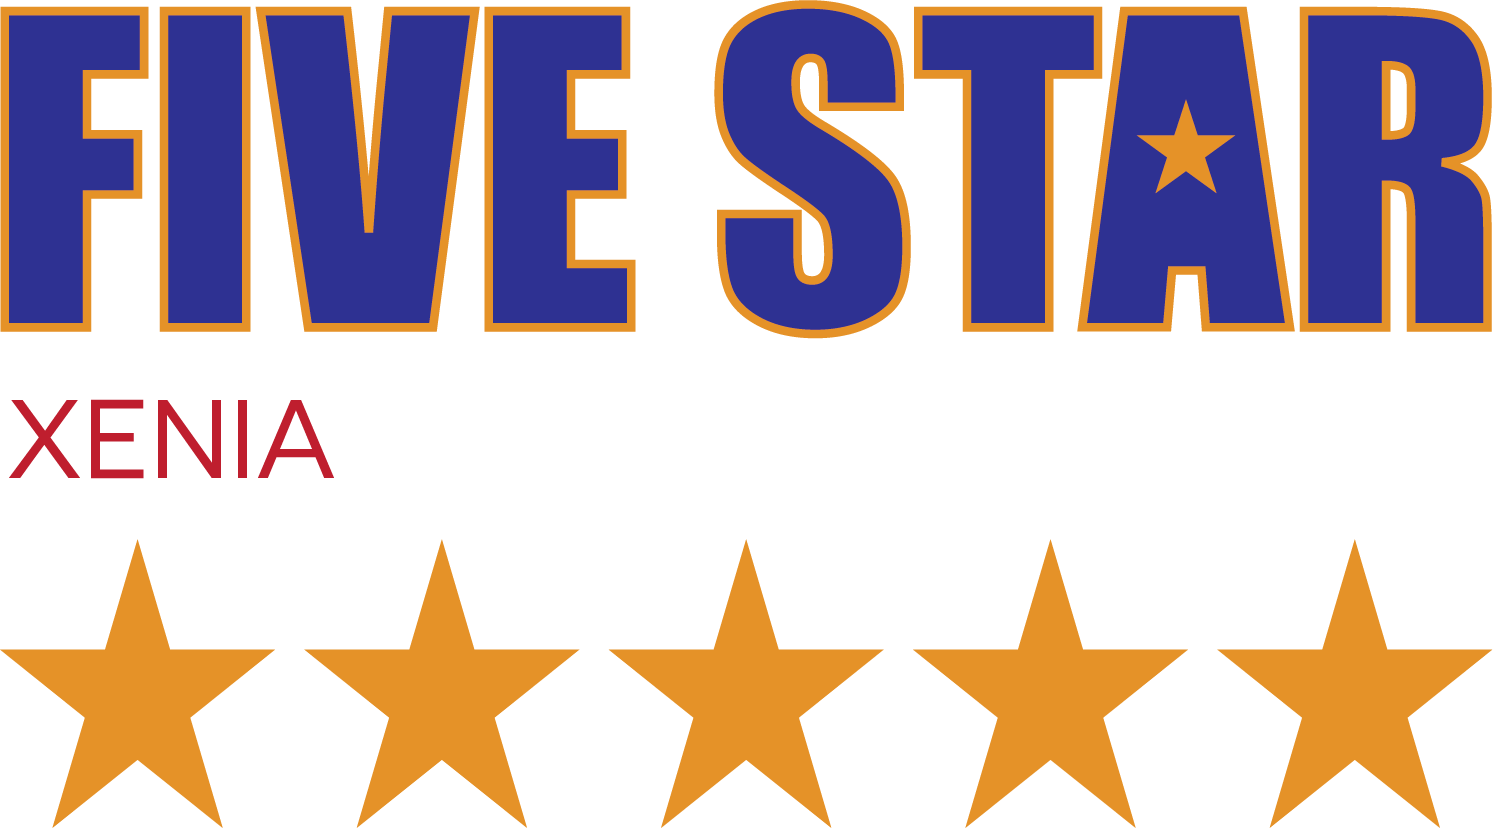 Five Star Xenia Heating & Cooling